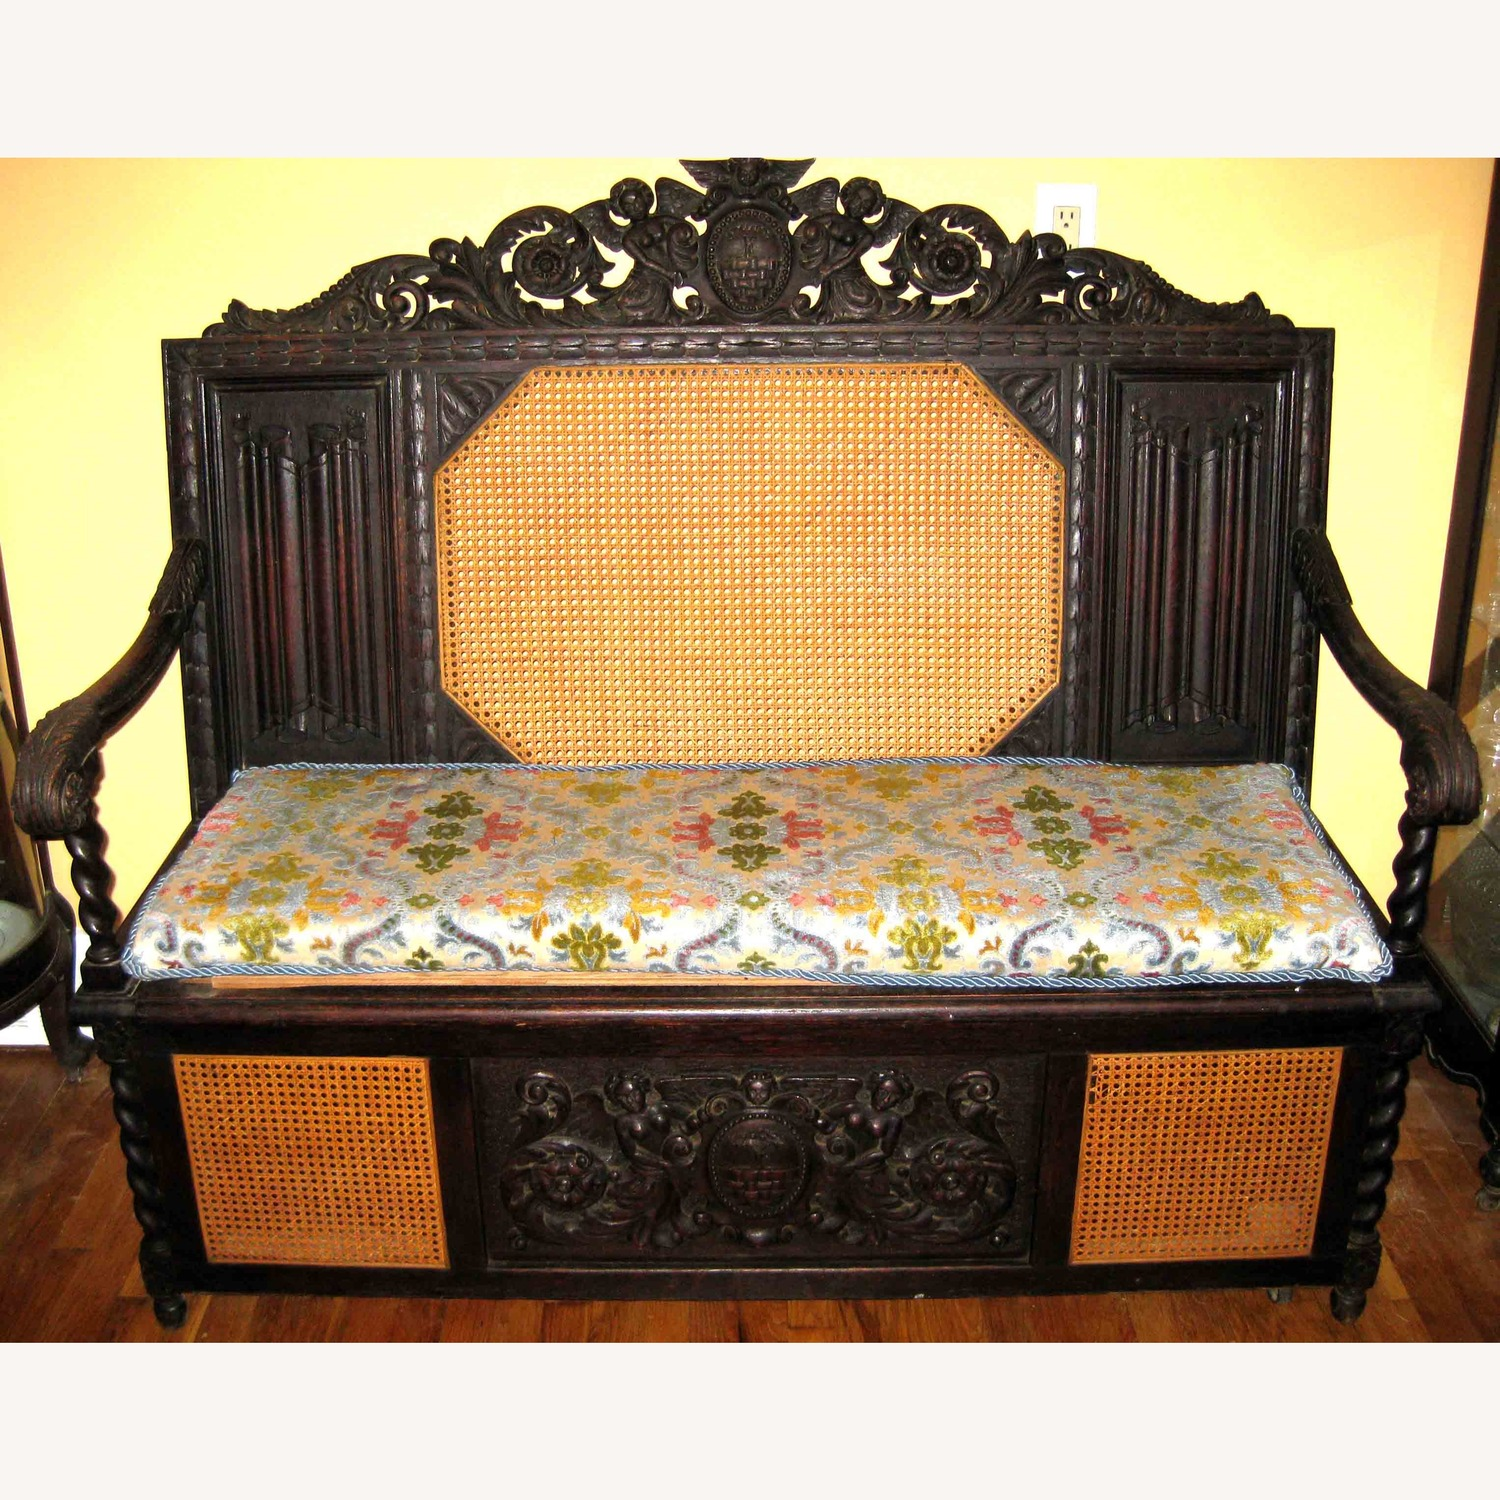 Ornately Carved Antique Italian Bench Chest - image-2